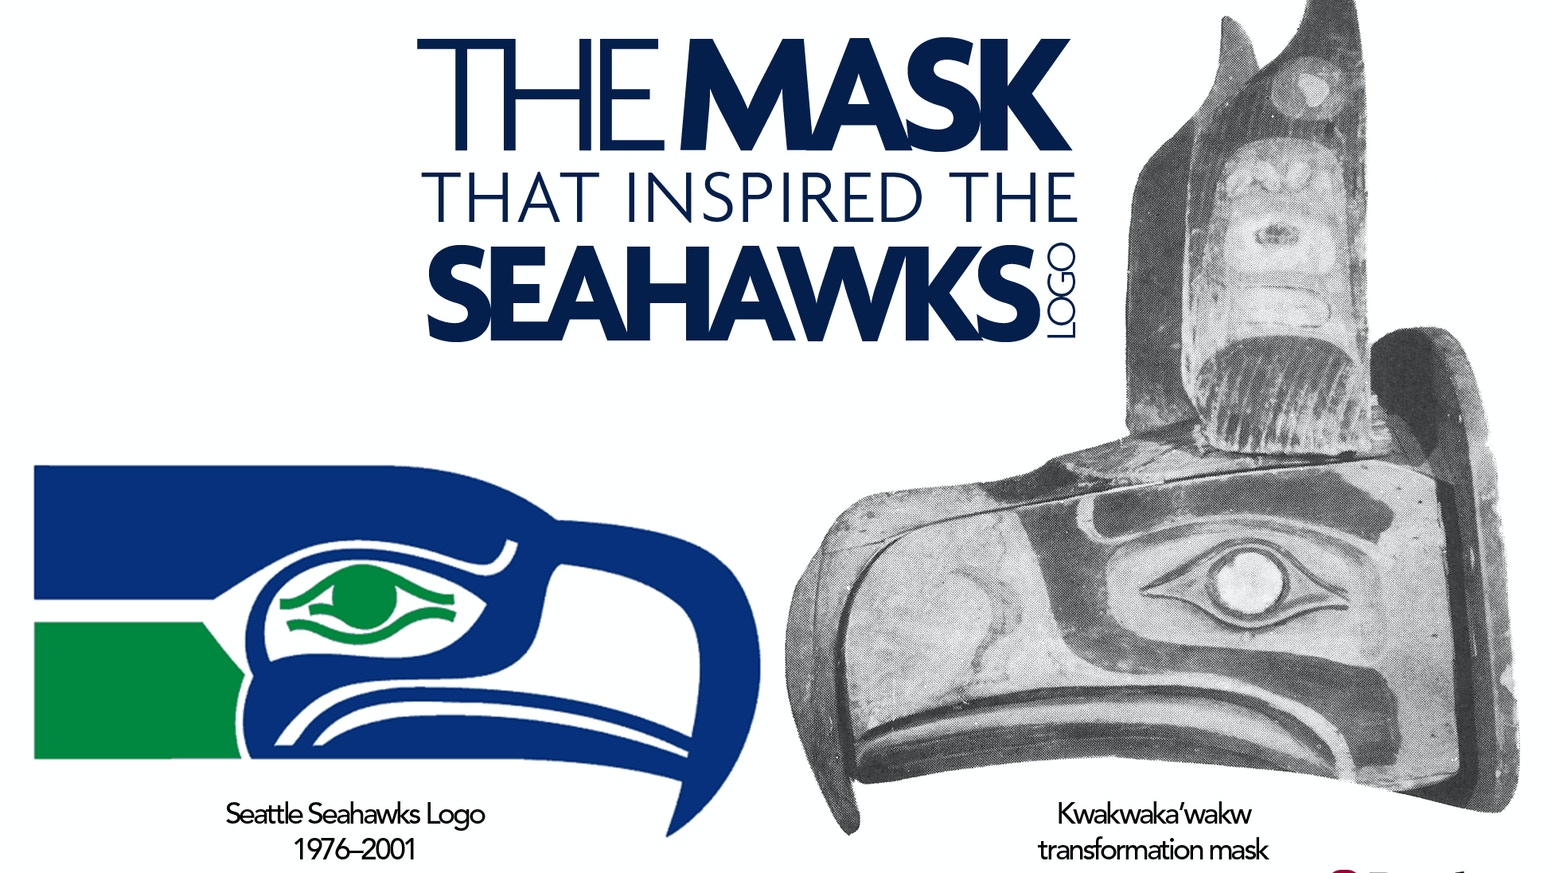 bring the seahawk mask to seattle by burke museum community